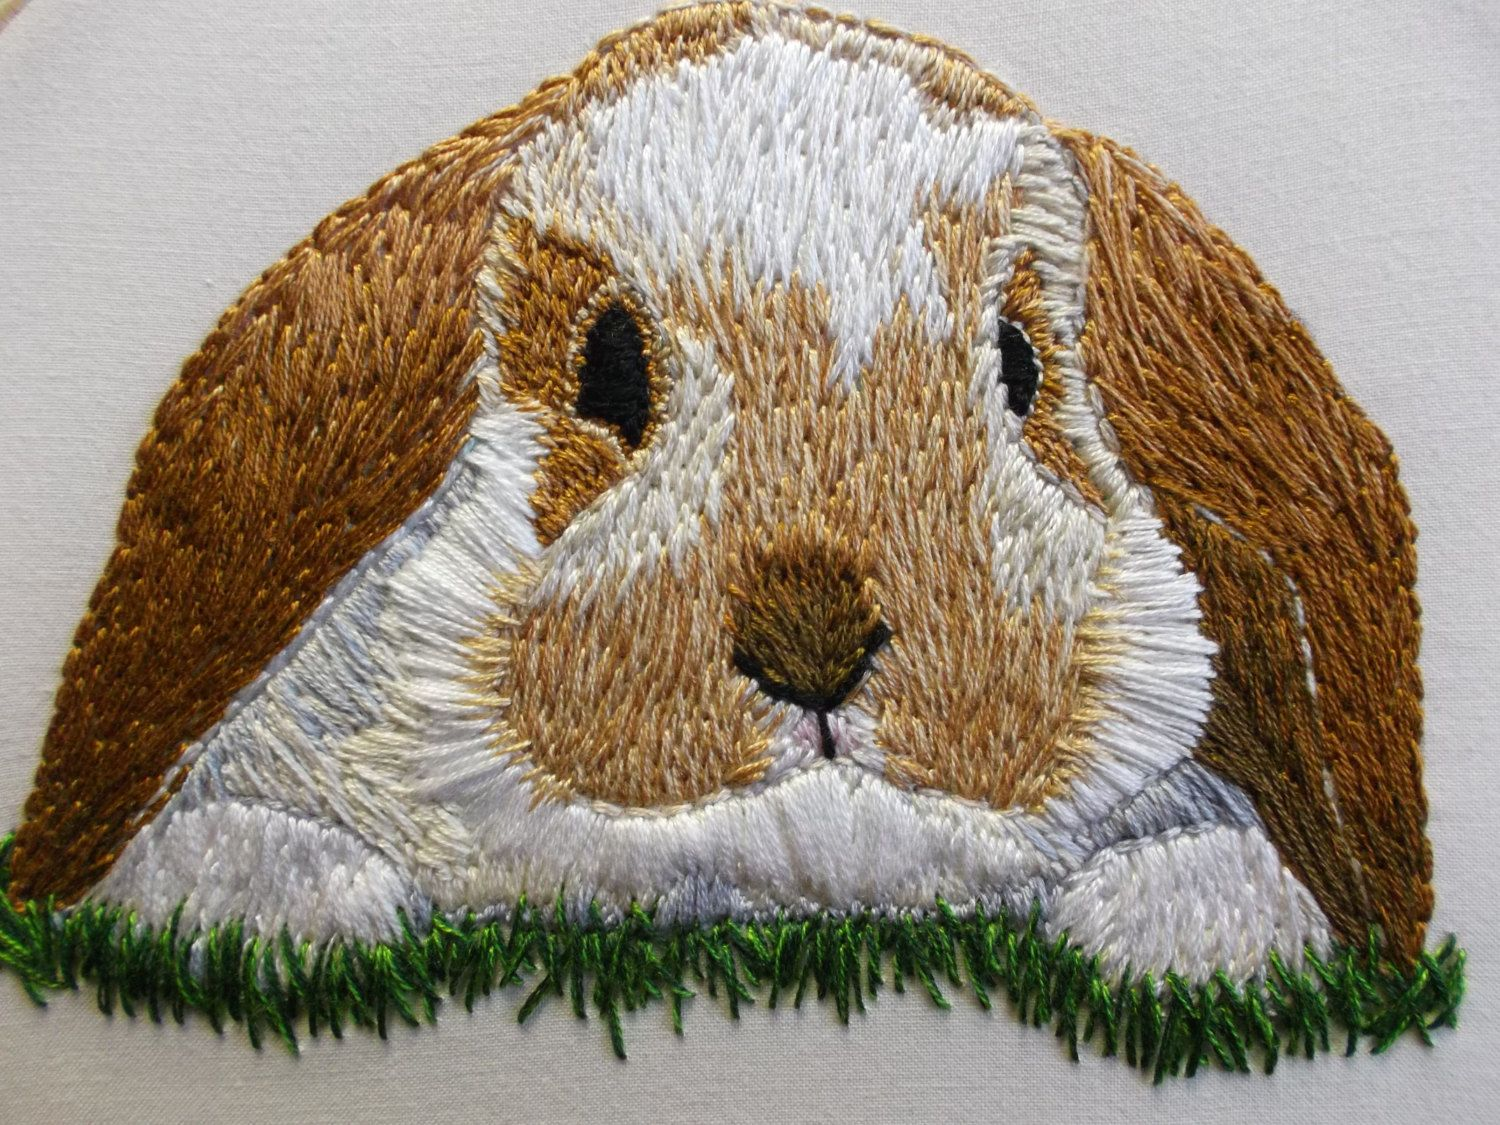 Hand embroidered bunny hoop art embroidery cross